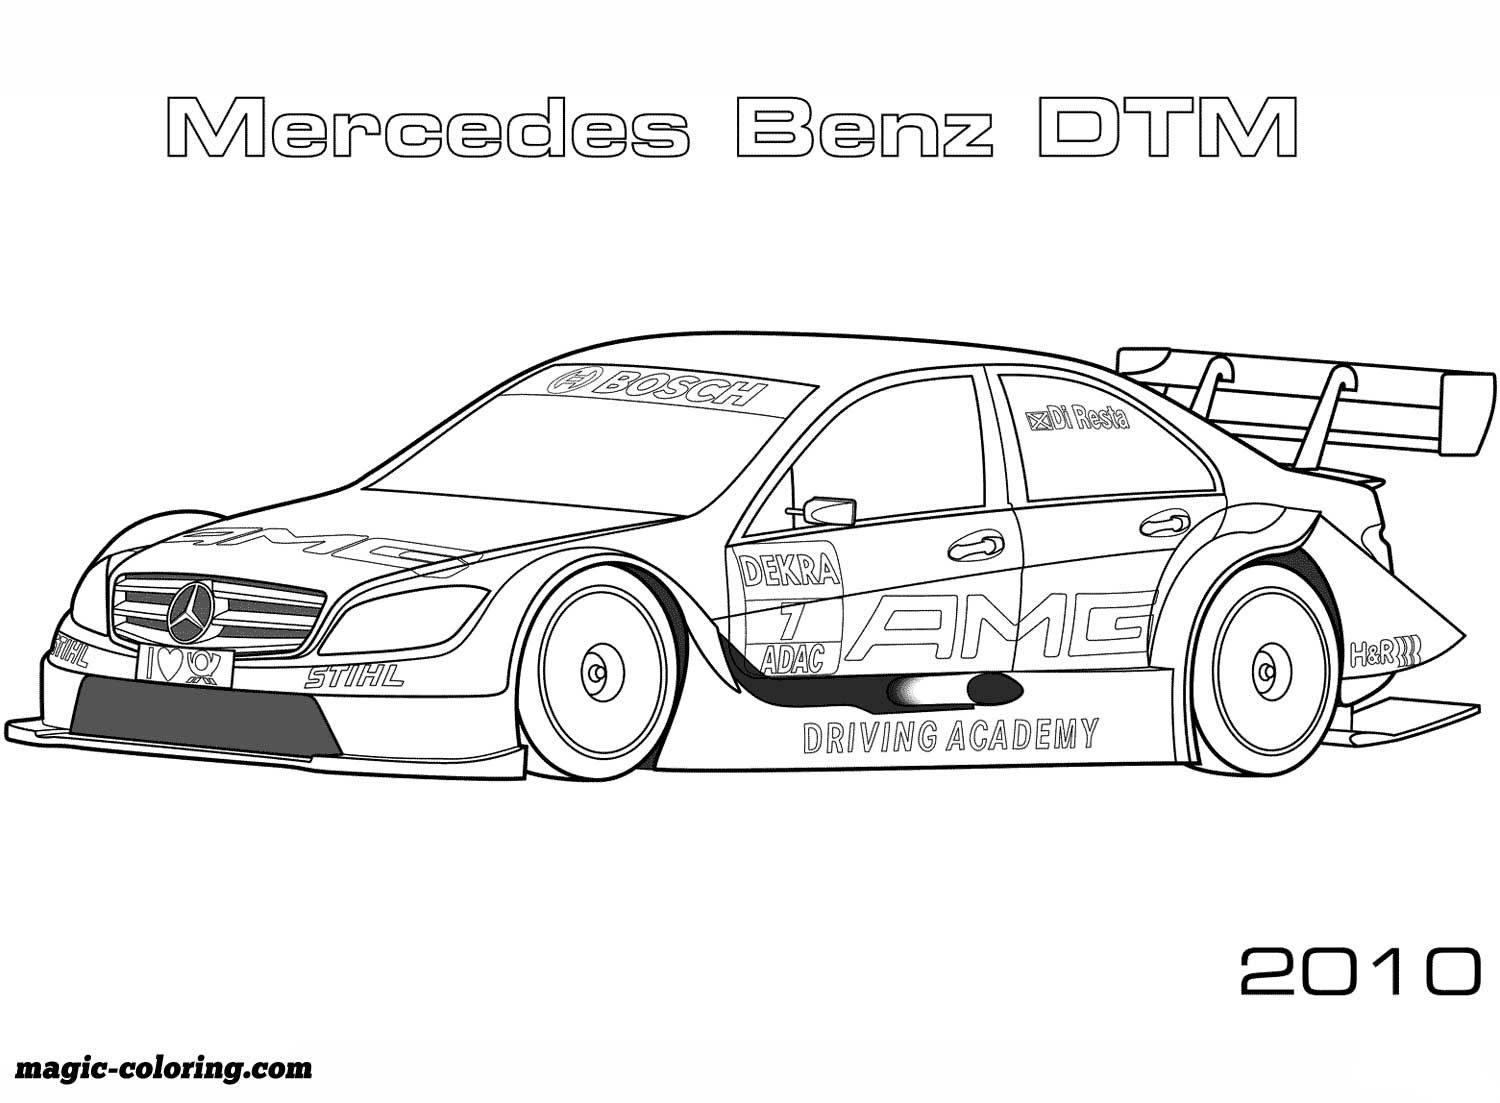 2010 Mercedes Benz Dtm Coloring Page Cars Coloring Pages Sports Coloring Pages Race Car Coloring Pages